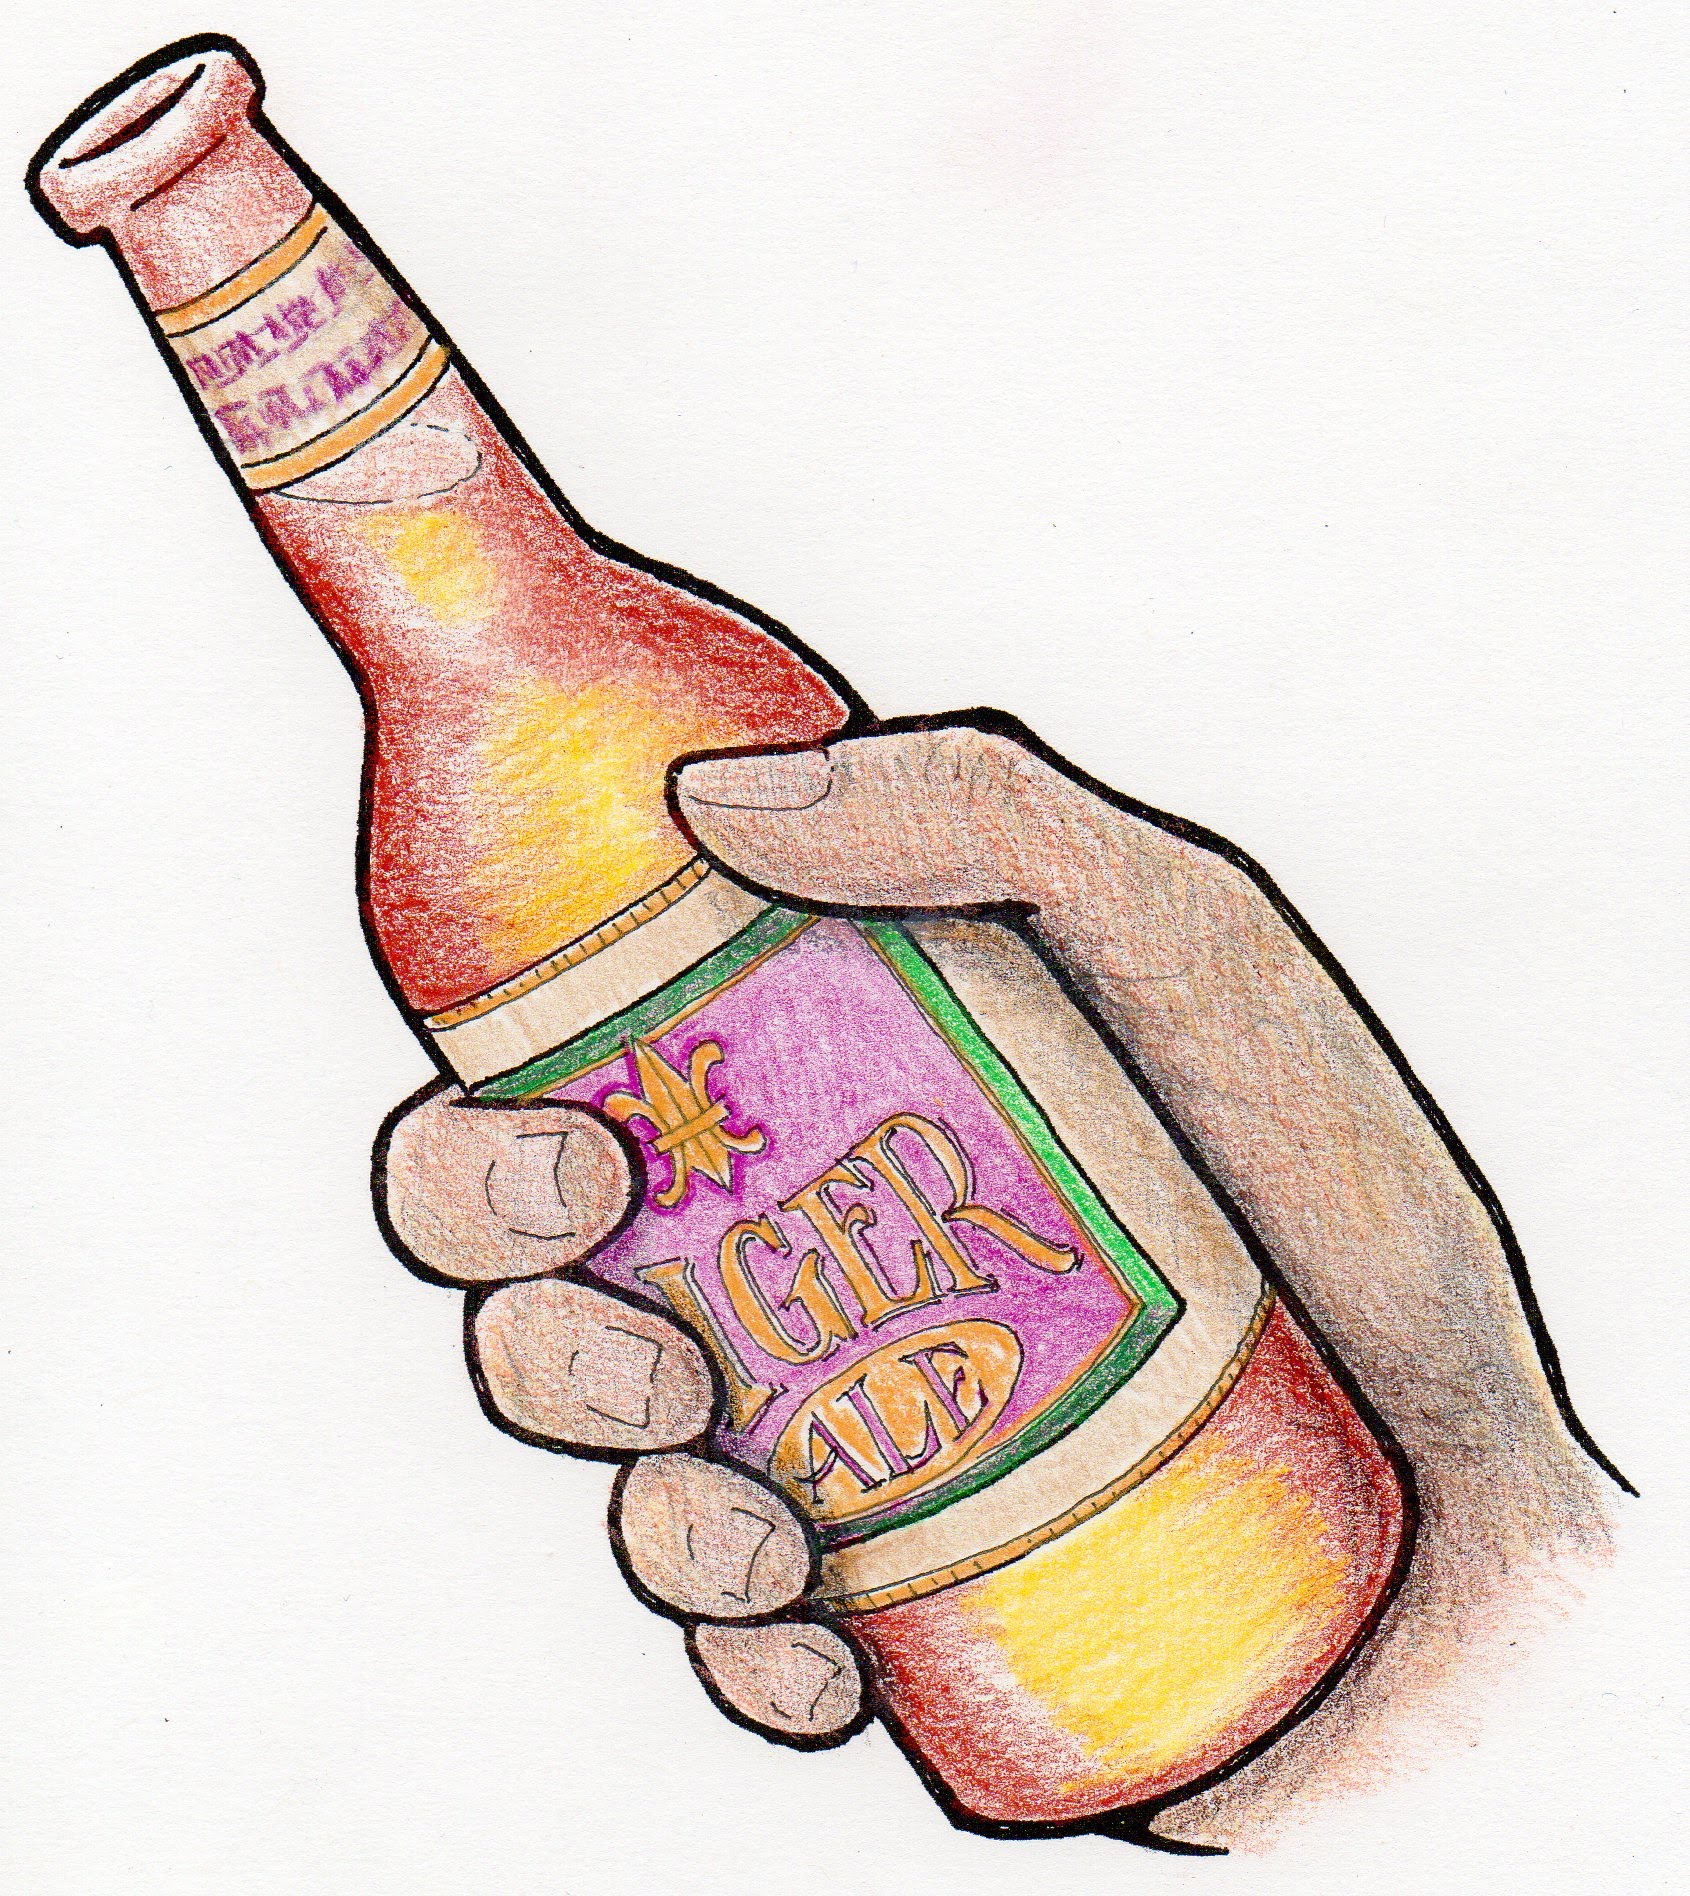 graphic depiction of beer bottle in a hand